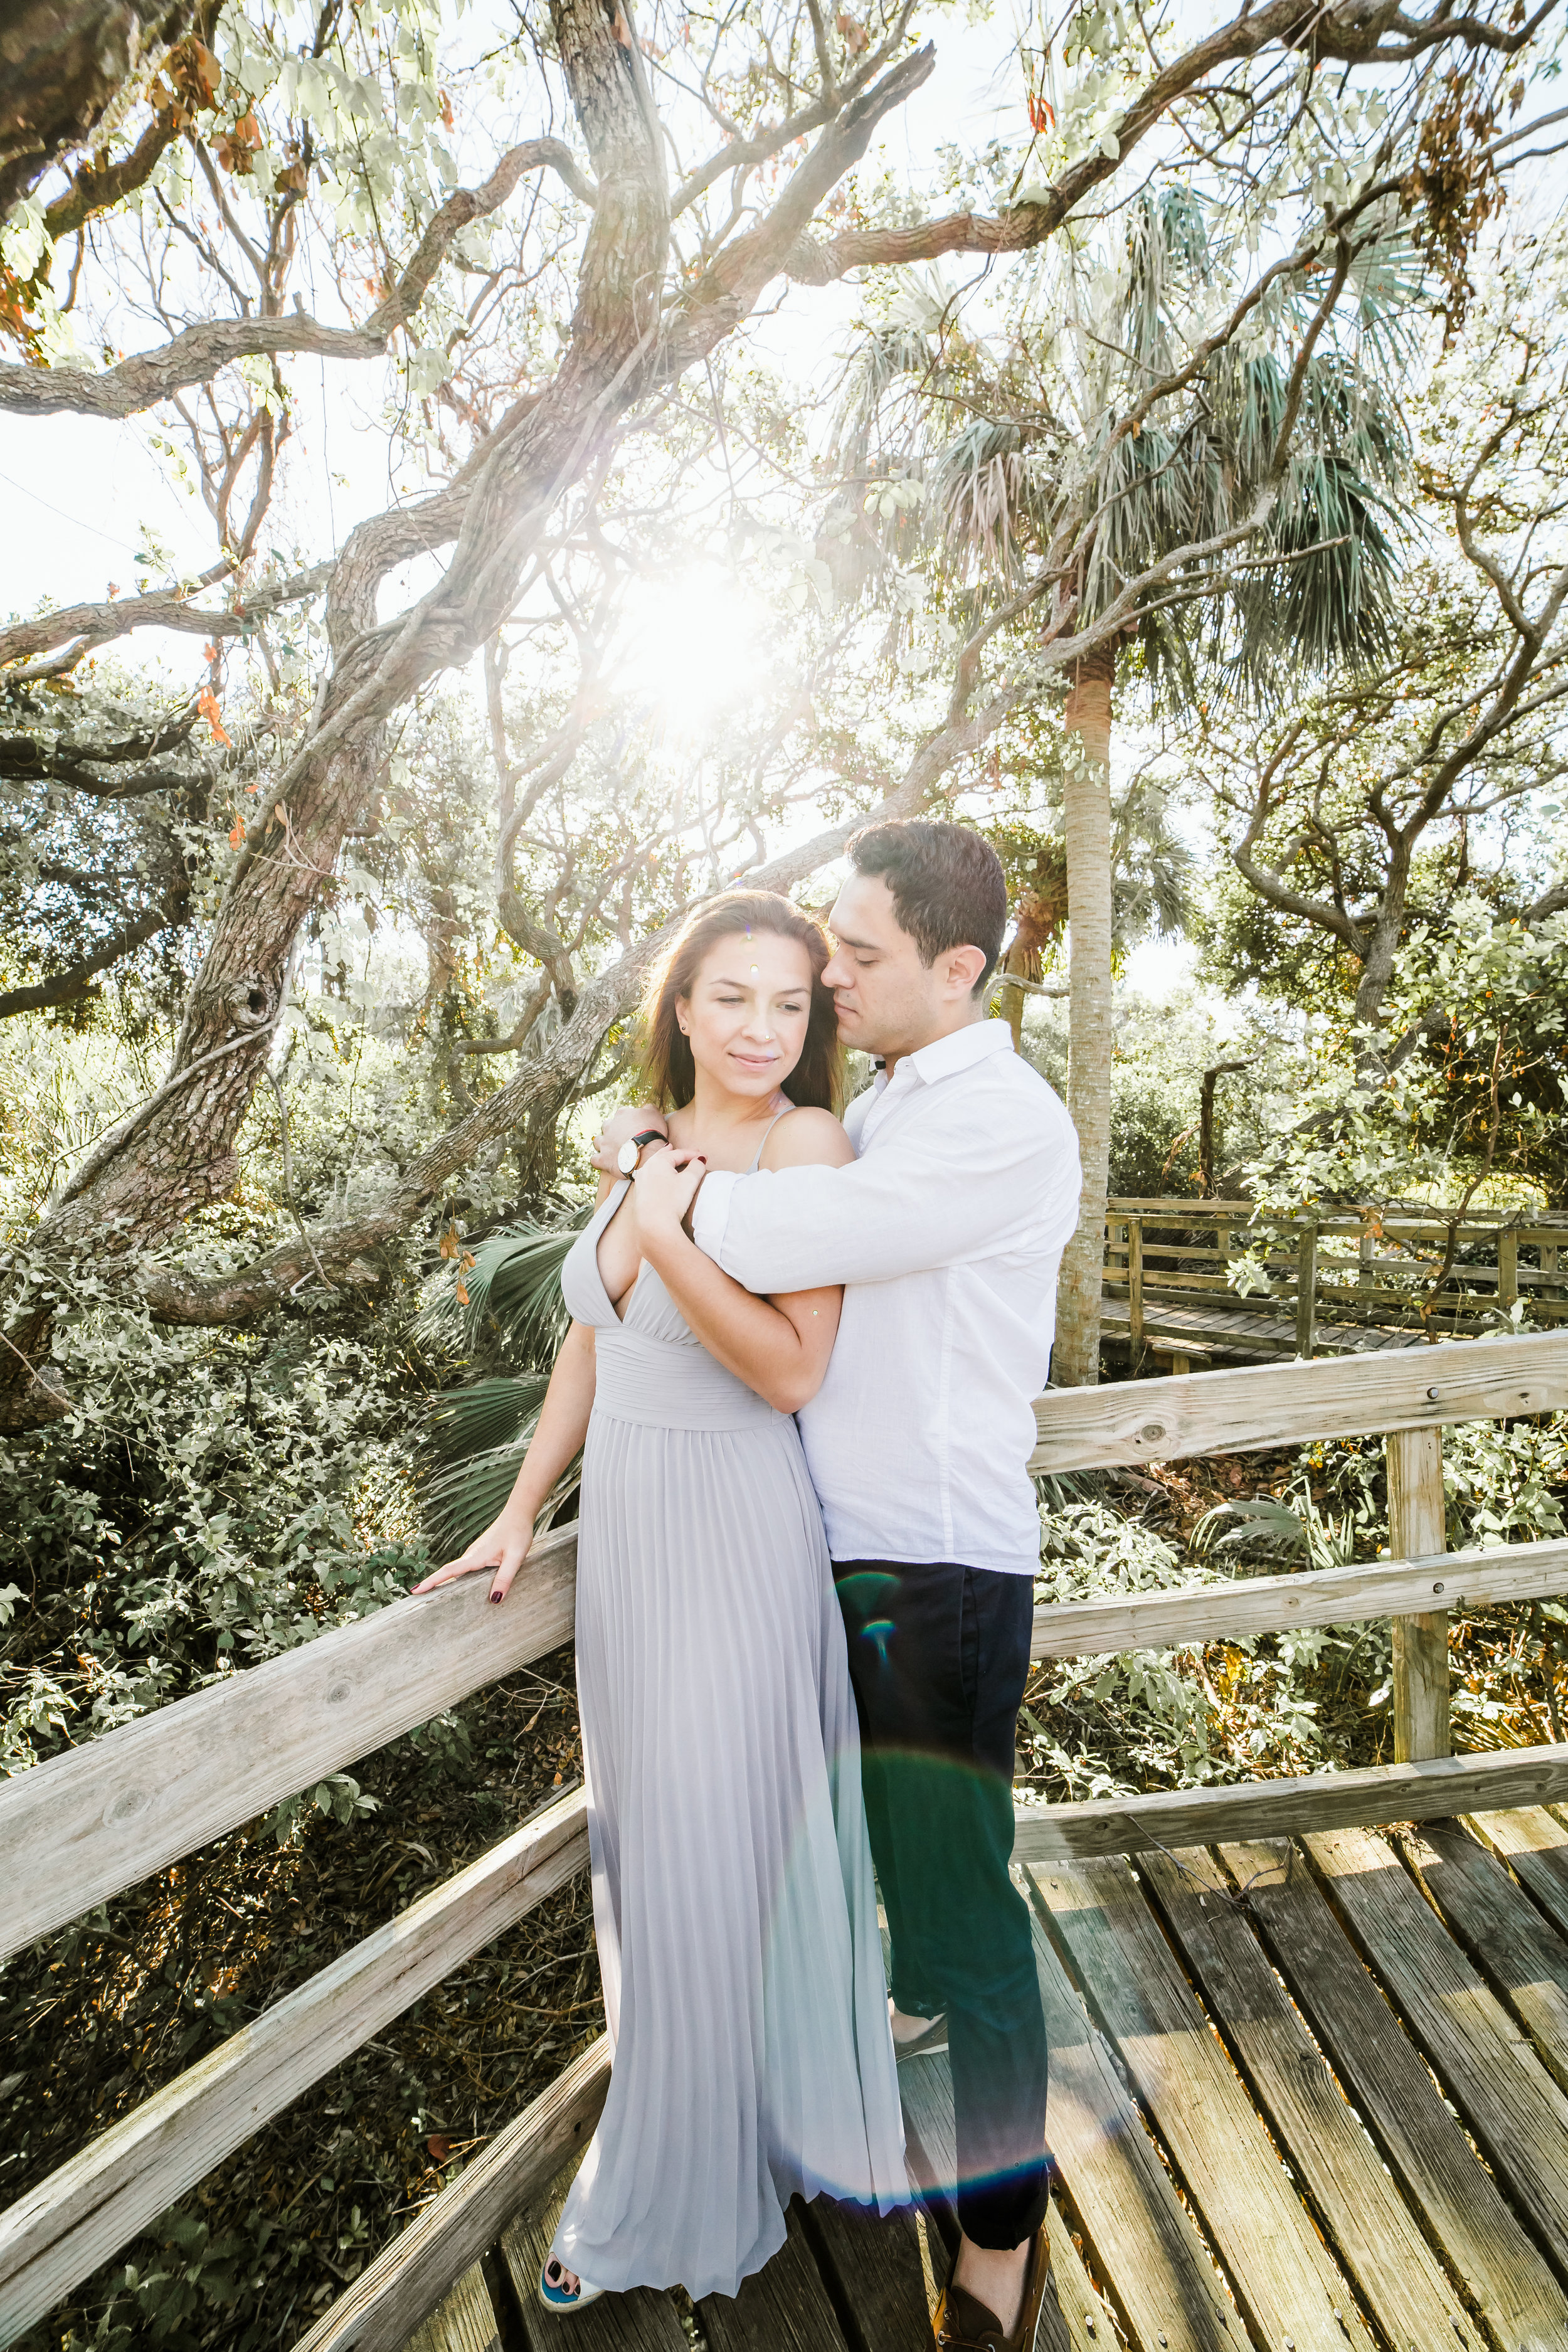 Elya + Andres - Cocoa Beach Engagement - boho bride organic eucalpytus crown mermaid forest12.jpg